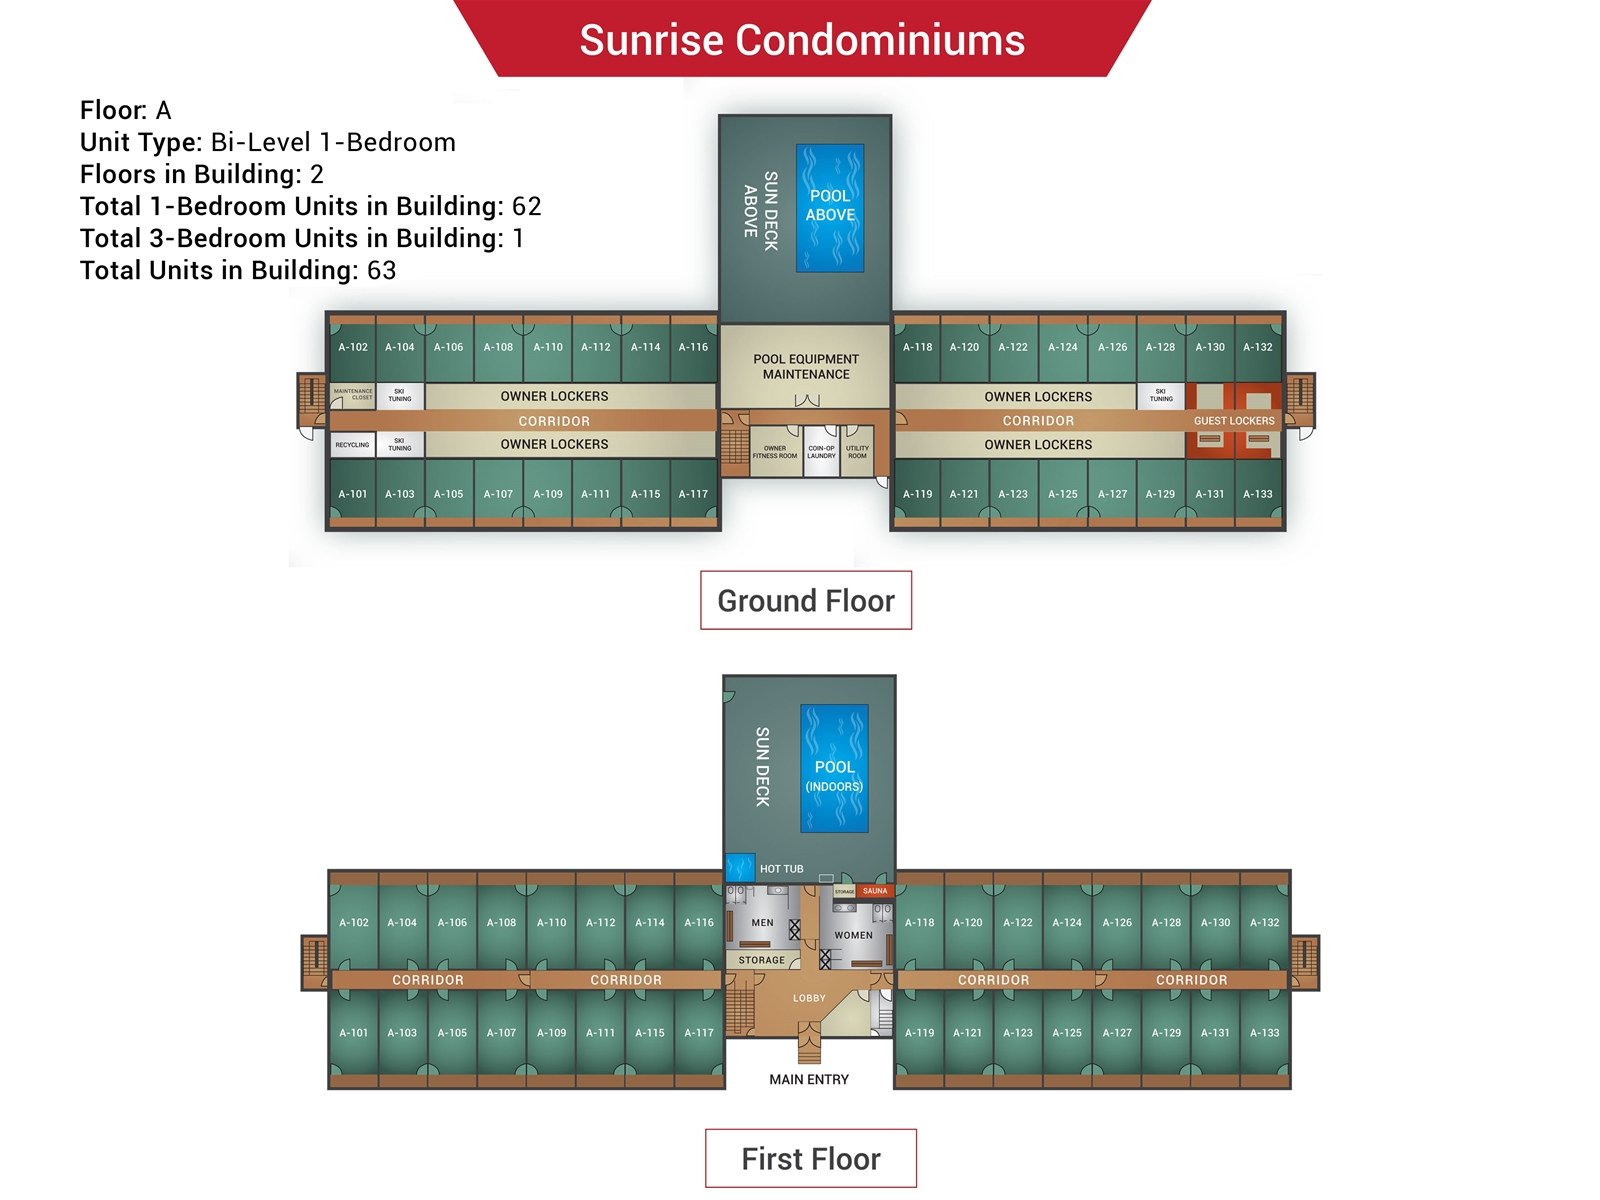 Floor Plan for Sunday River Condo - Sunrise A-129